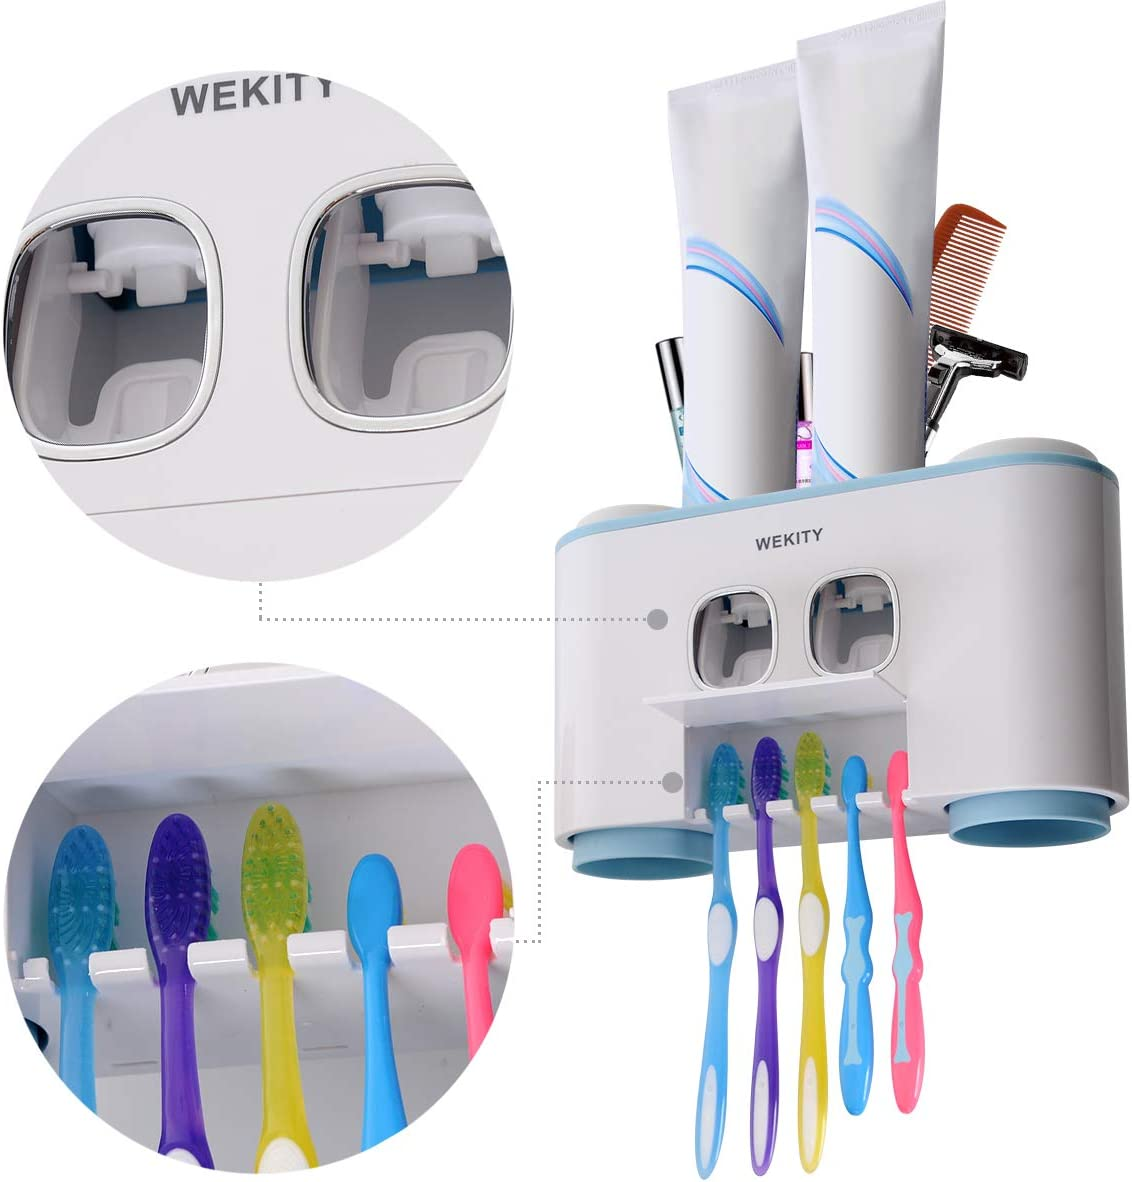 Toothbrush Holder Wall Mounted Multifunctional Toothbrush Holder for Bathroom Toothbrush Holder with Cover 6 Toothbrush Slots and 2Cups